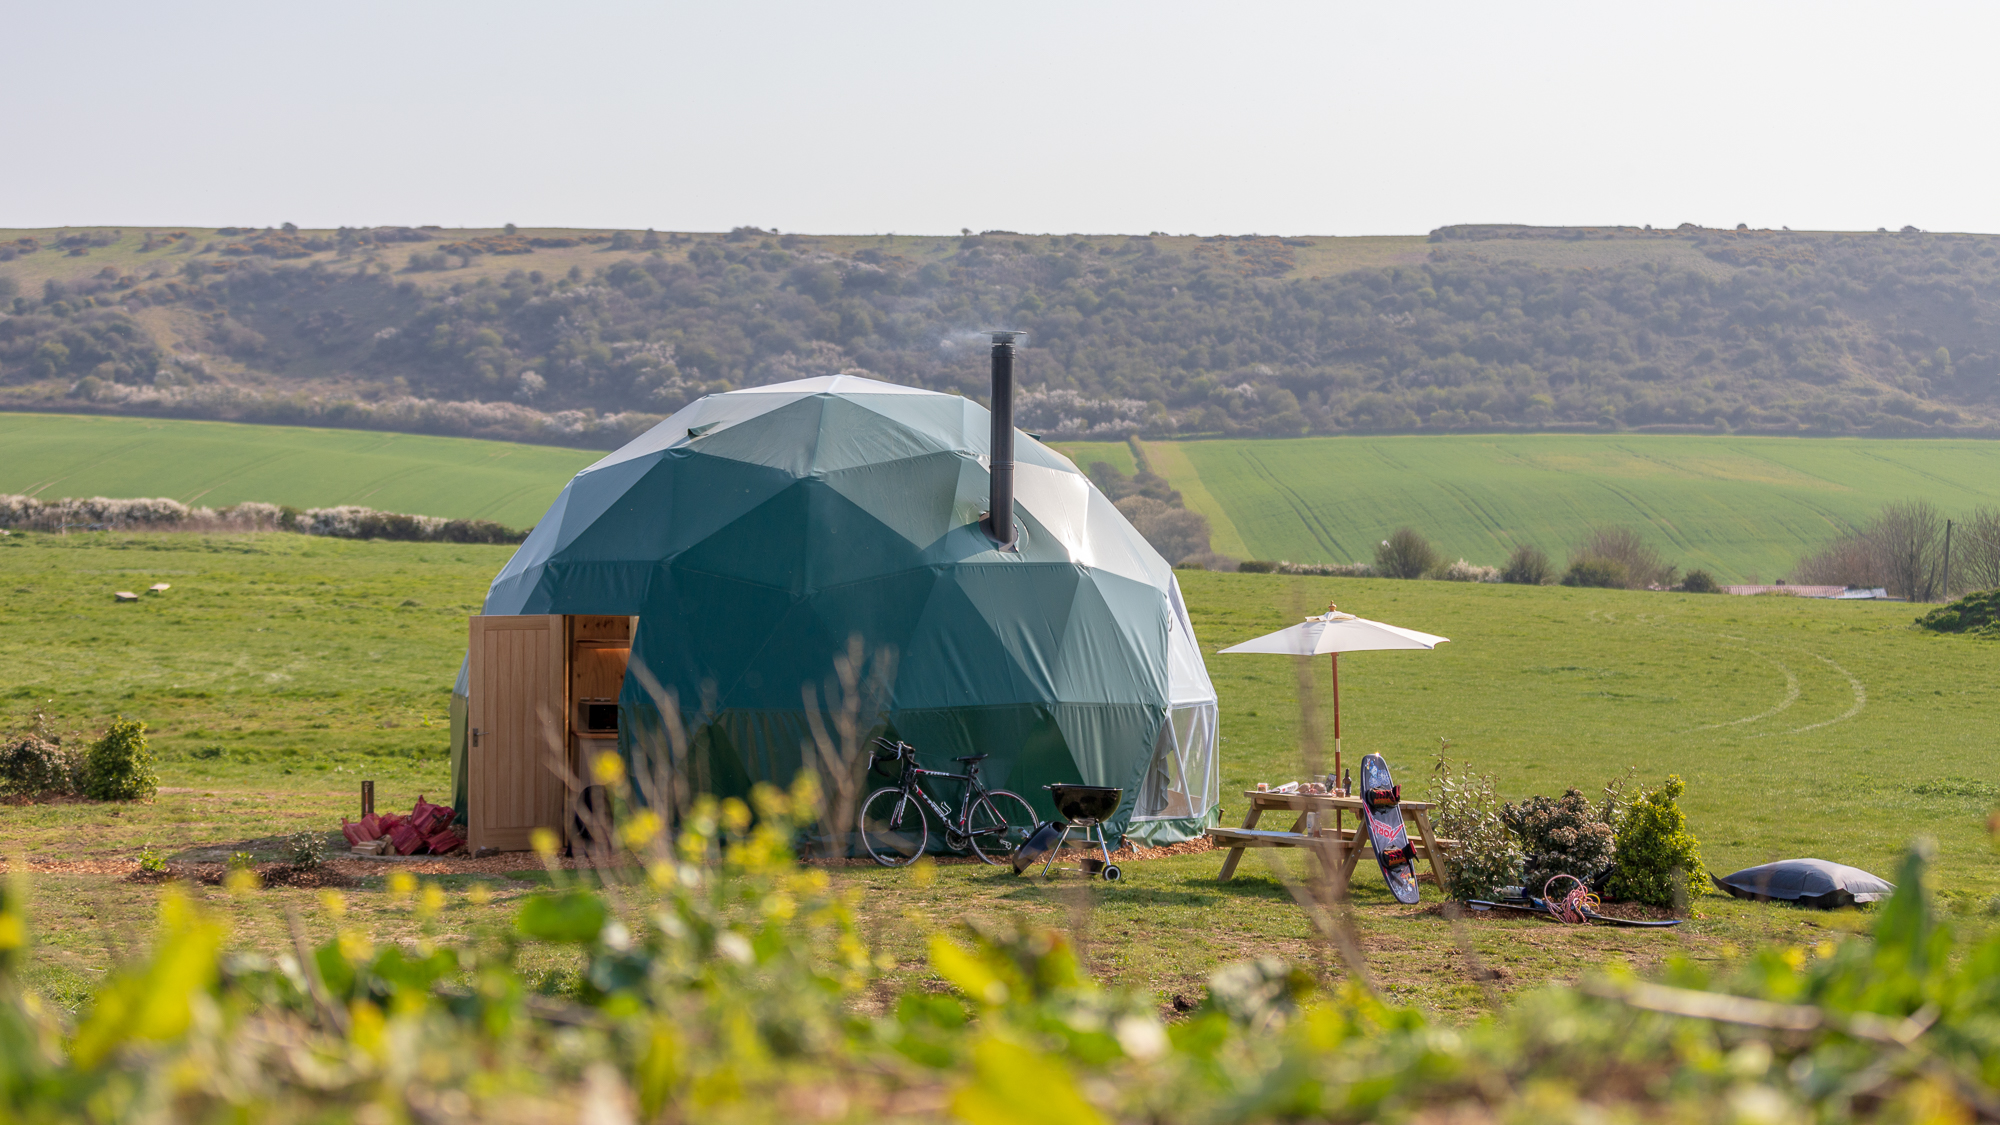 Glamping Dome Accommodation at Tom's Eco Lodge Isle of Wight